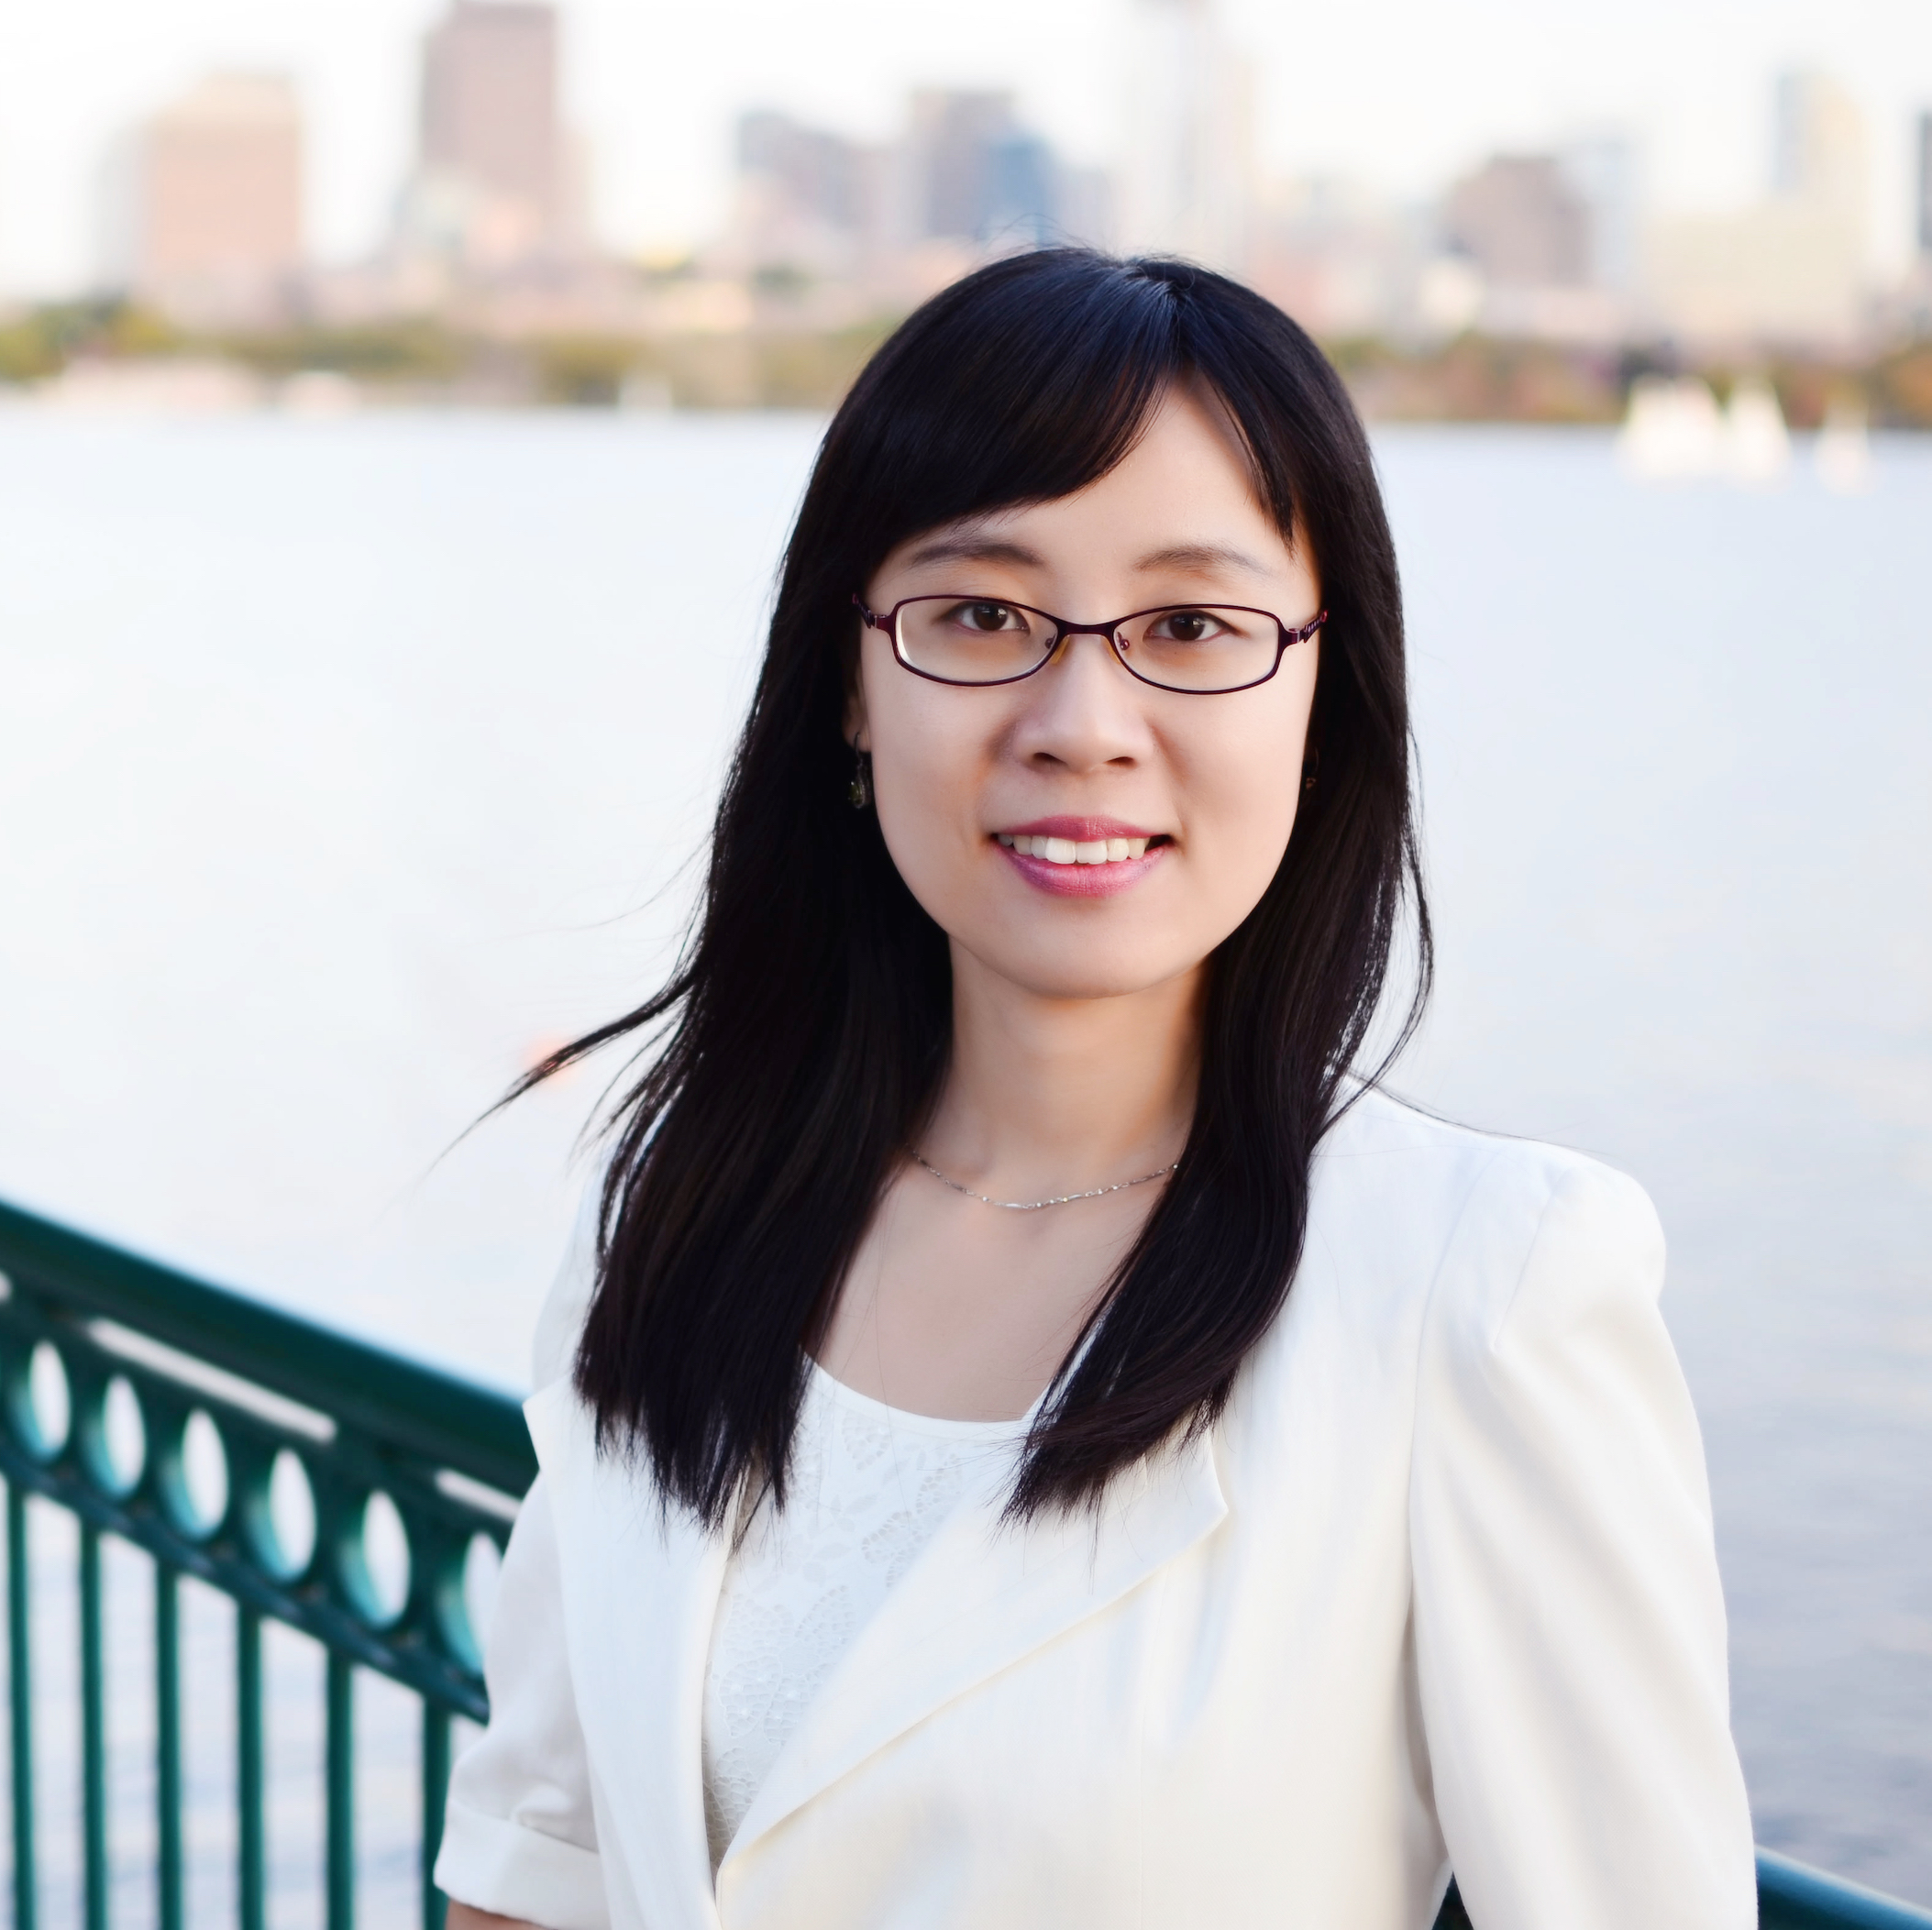 Q+A With Jie Bai, Assistant Professor Of Public Policy